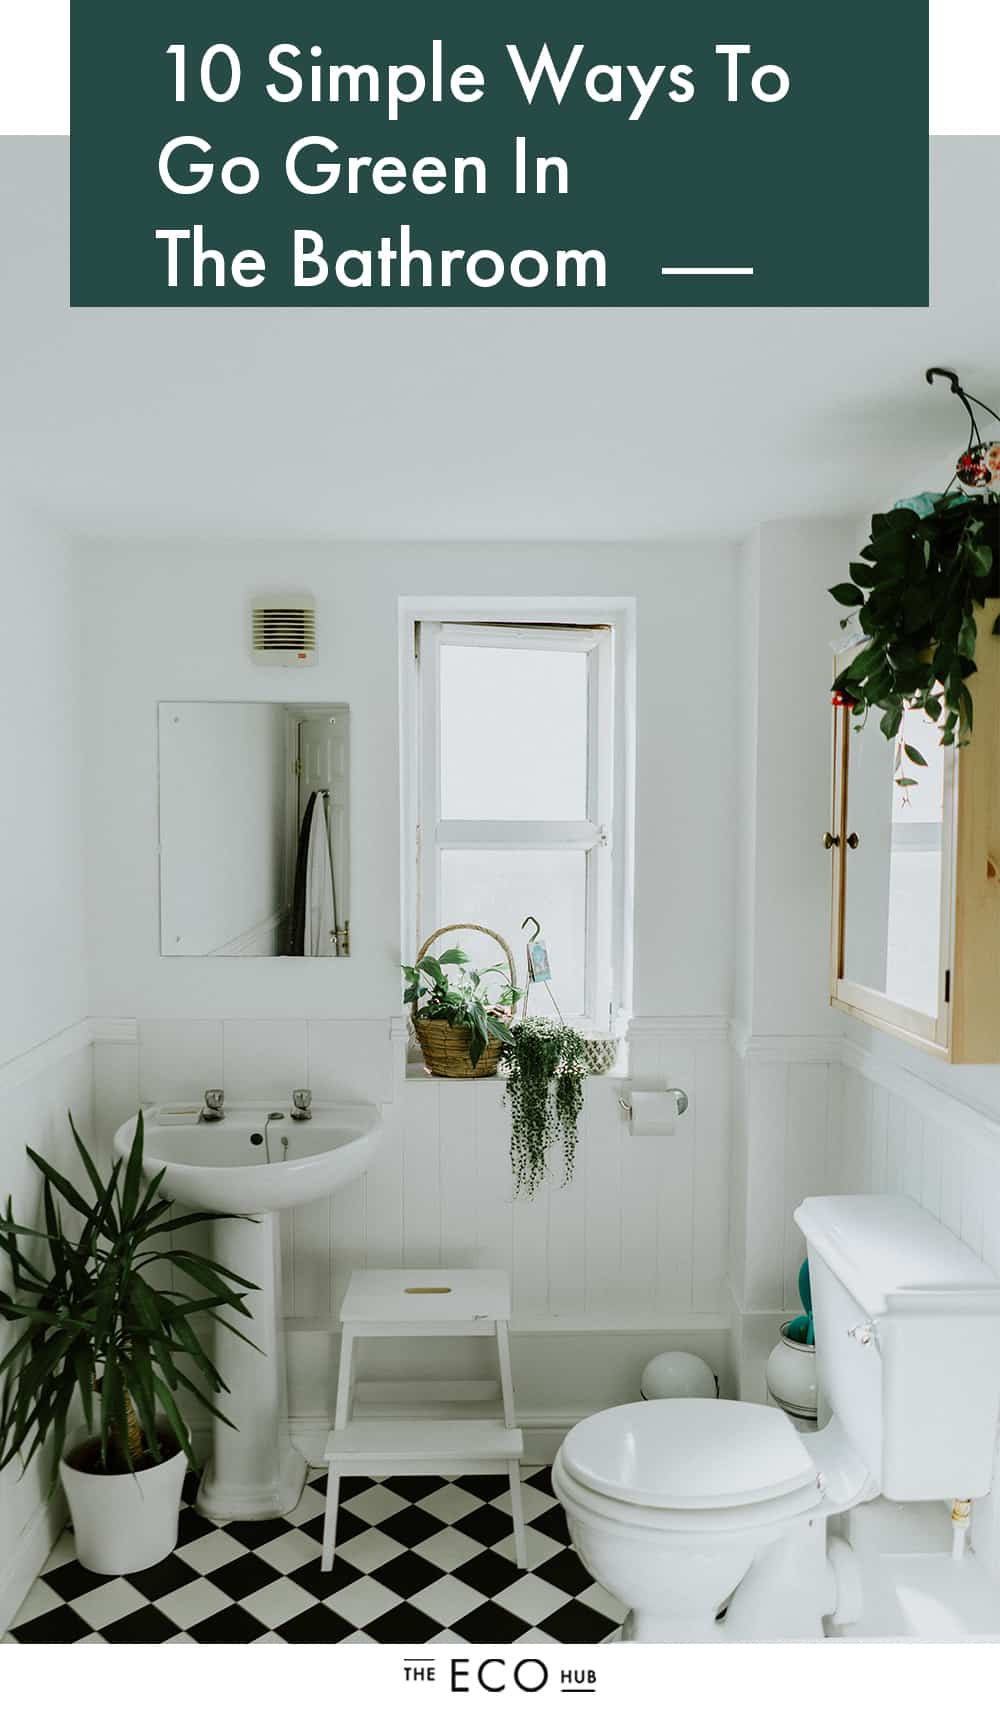 10 Simple Ways To Go Green In The Bathroom